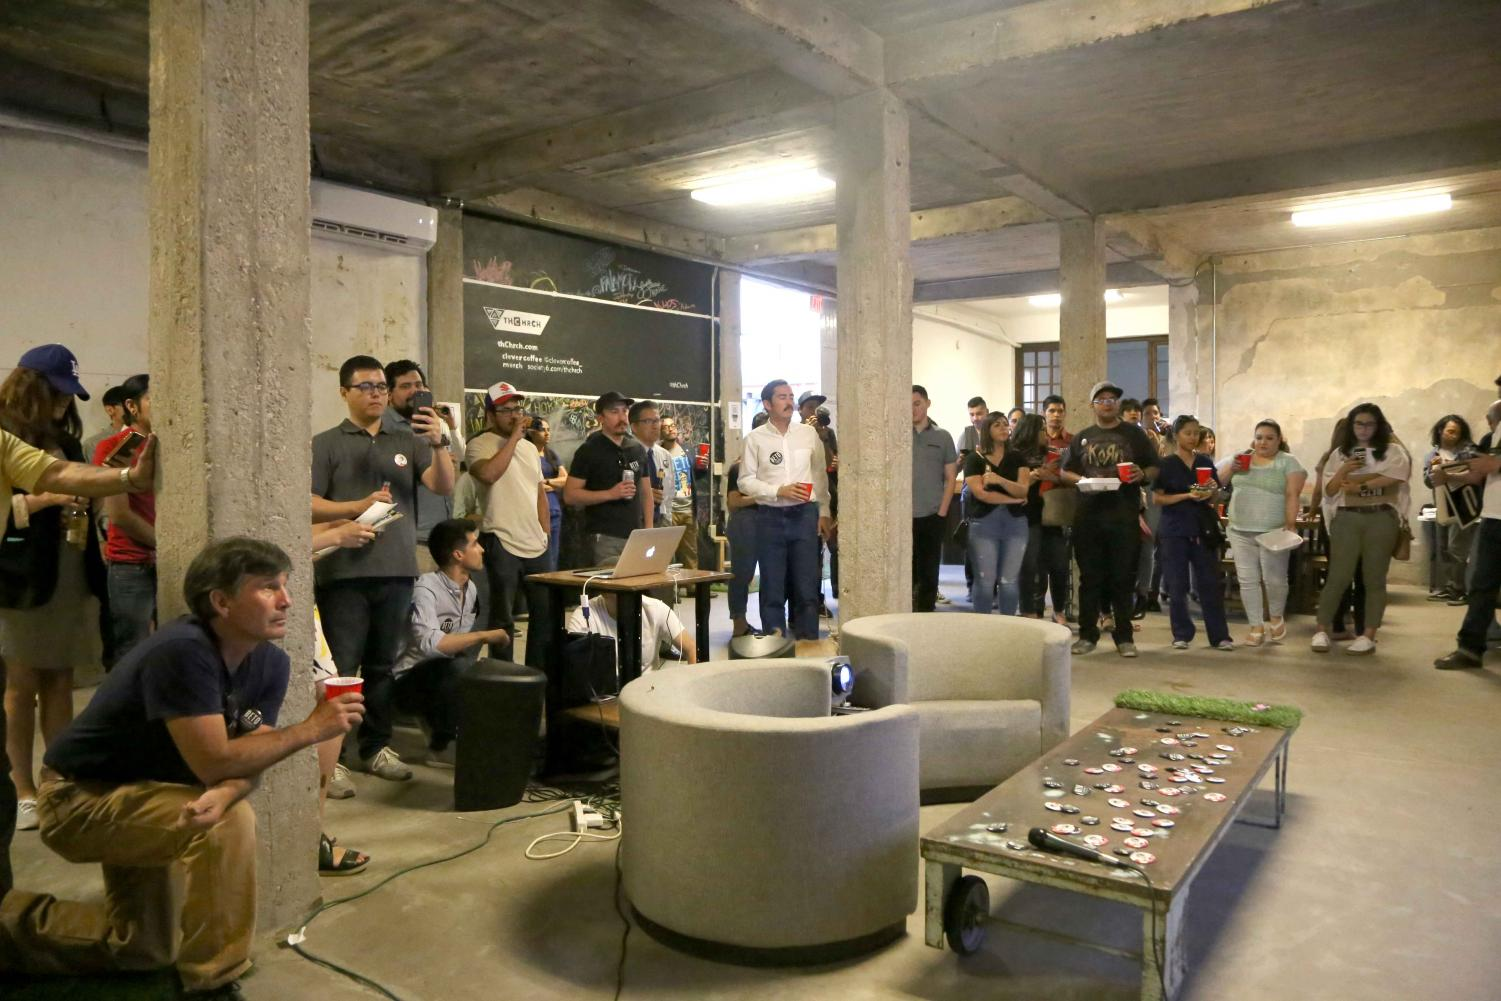 thChrch hosted a Beto O'Rourke fundraiser on Wednesday, April 18. The space will serve as a space for artists and other future events.